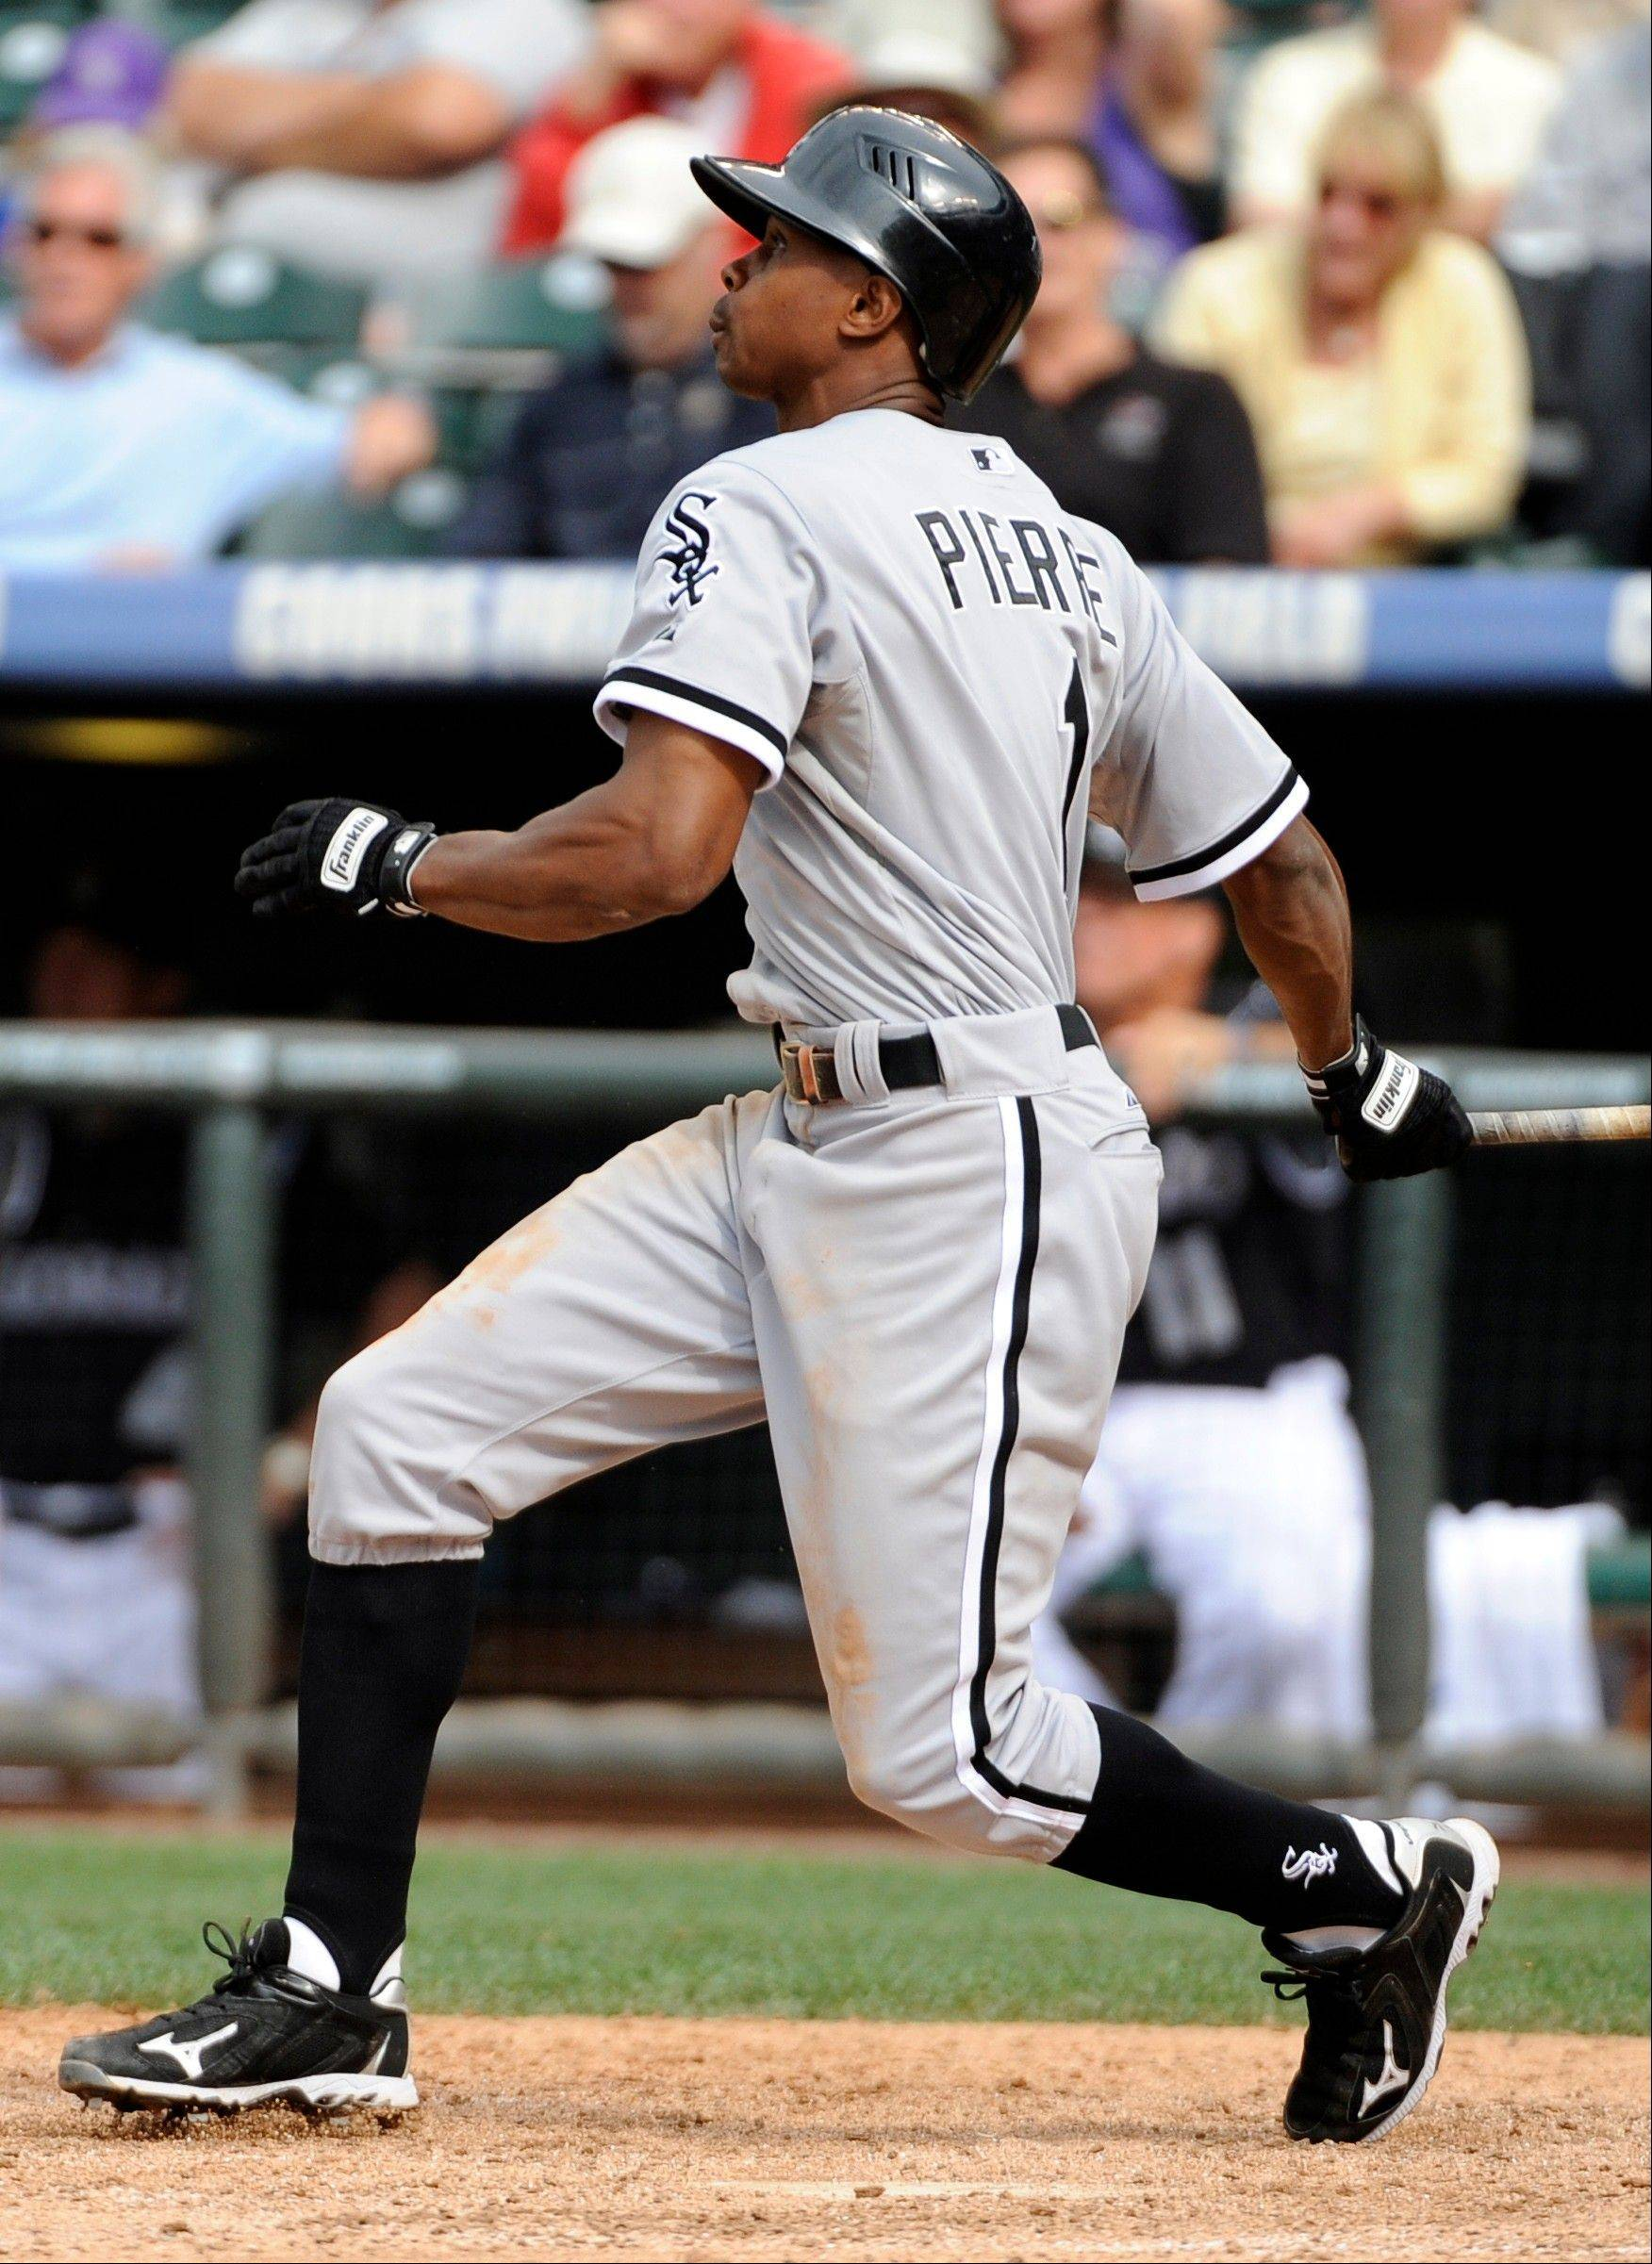 Juan Pierre hits a 2-run single in the 10th inning of the Sox' 6-4 victory over the Rockies on Thursday.